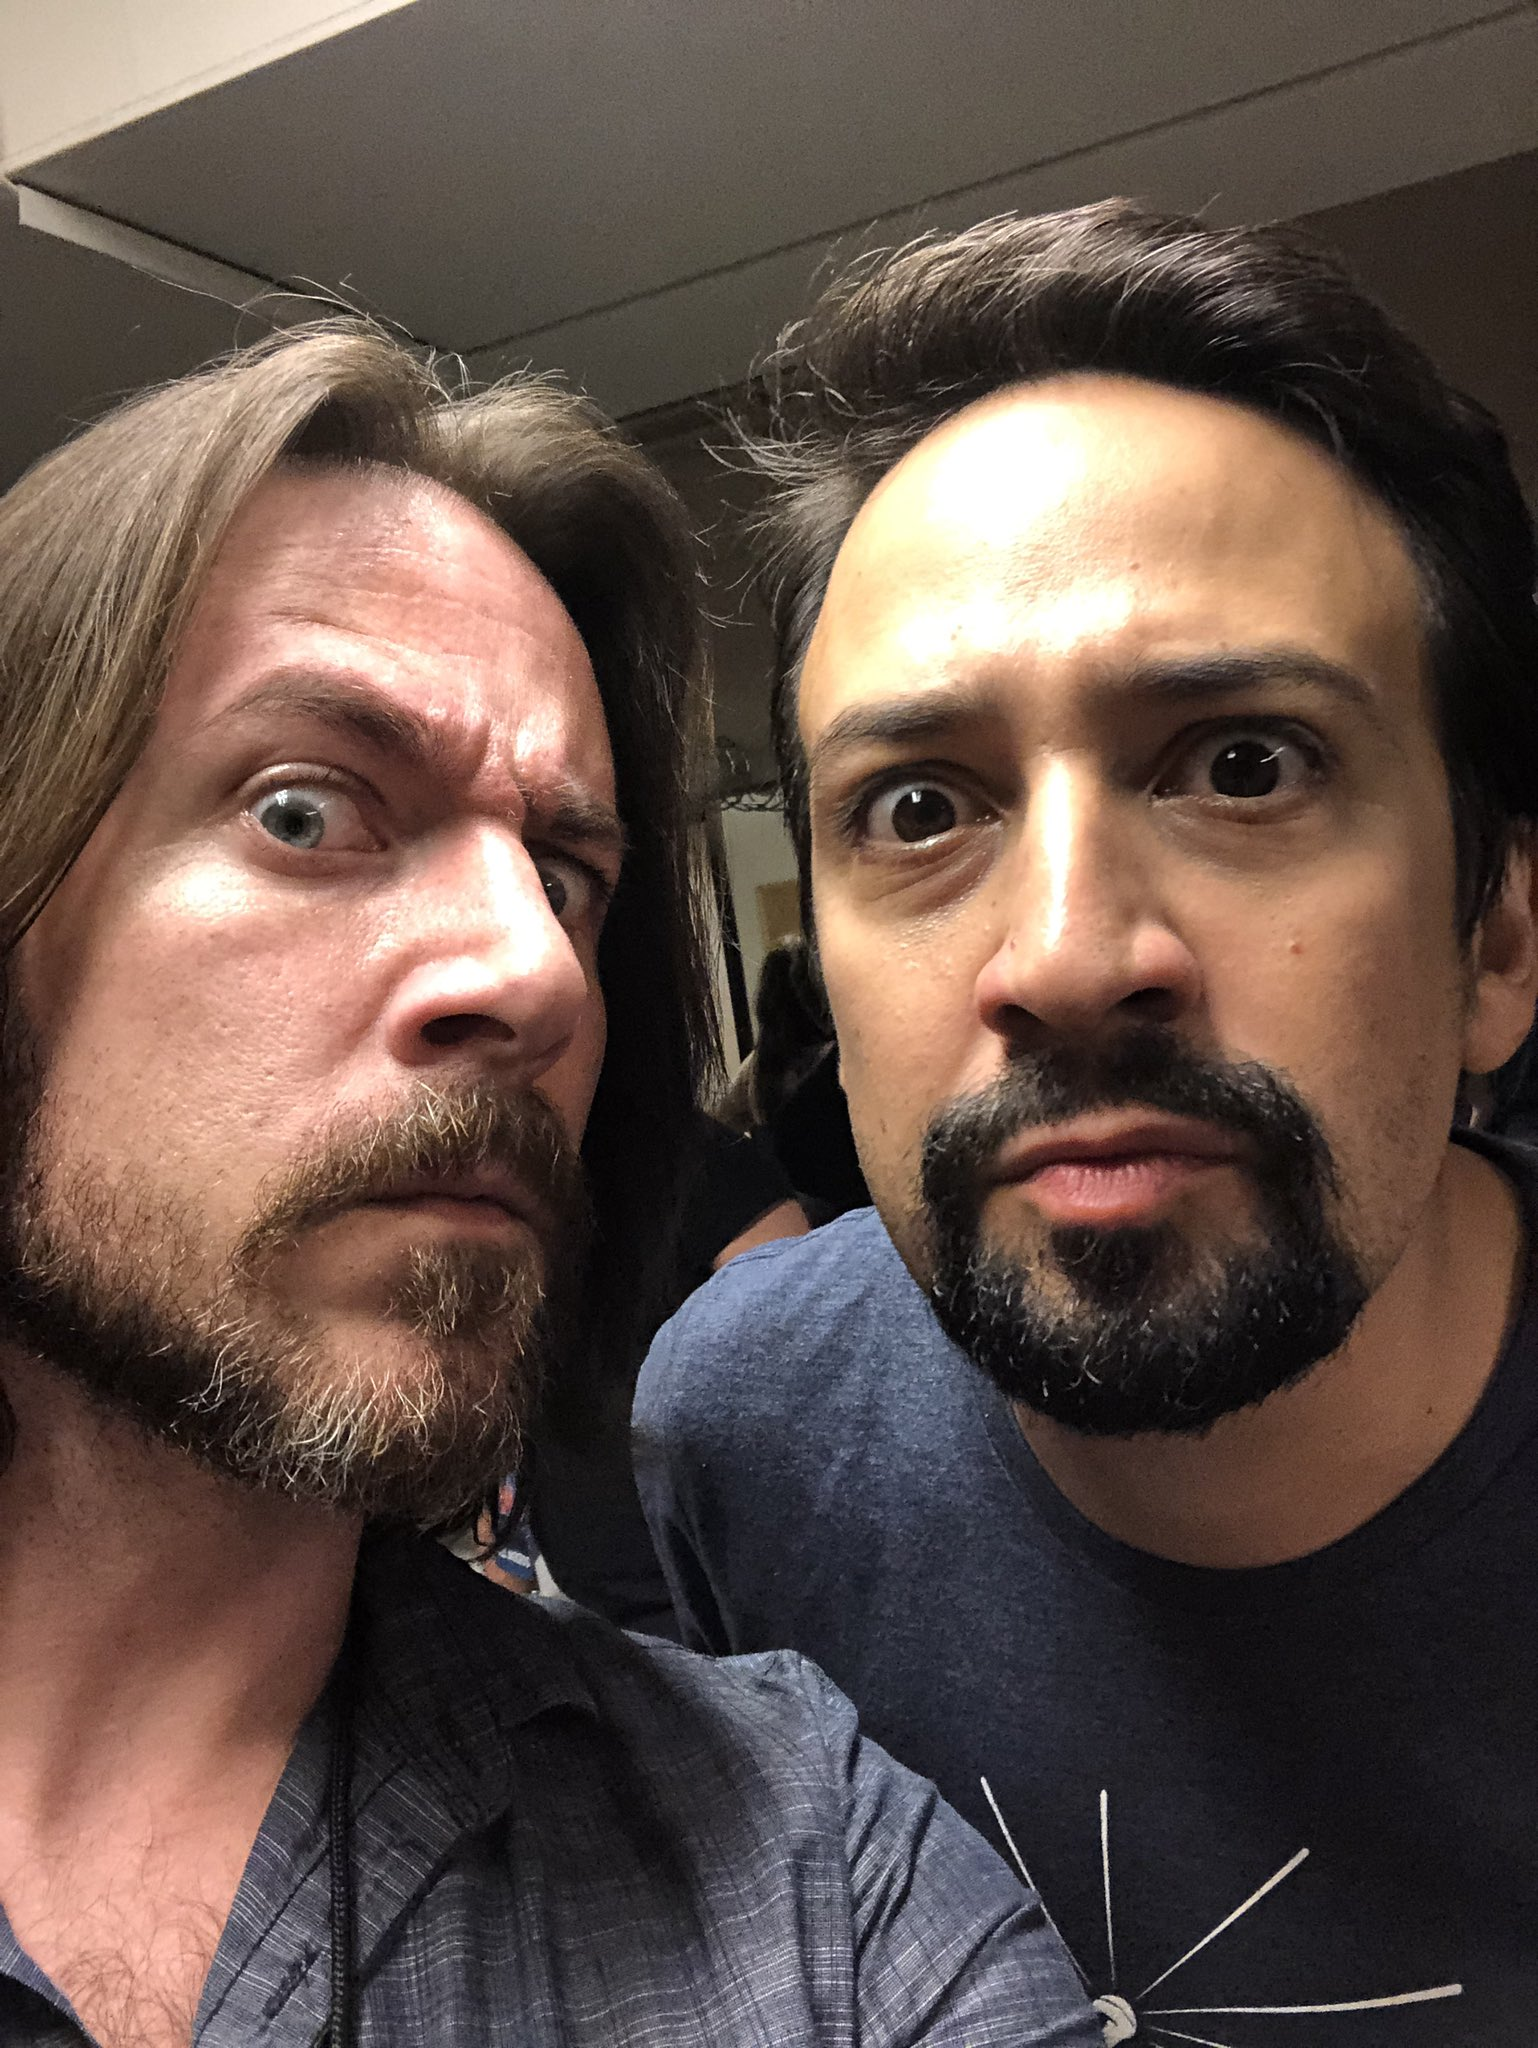 Matthew Mercer On Twitter This Lin Manuel Guy Is Pretty Cool Up And Comer Keep An Eye Out He S Gonna Big